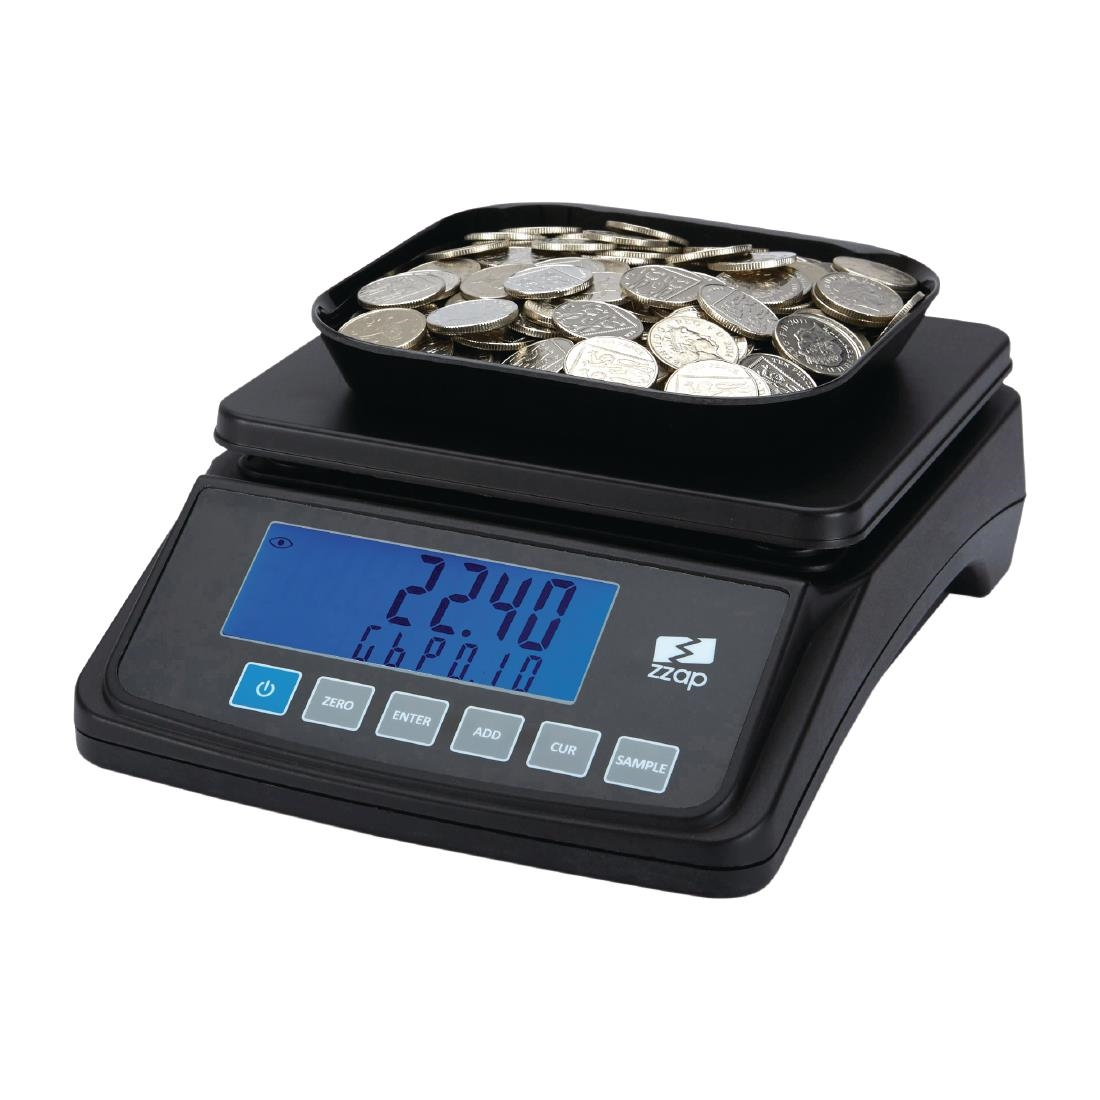 ZZap MS10 Coin Counting Scale